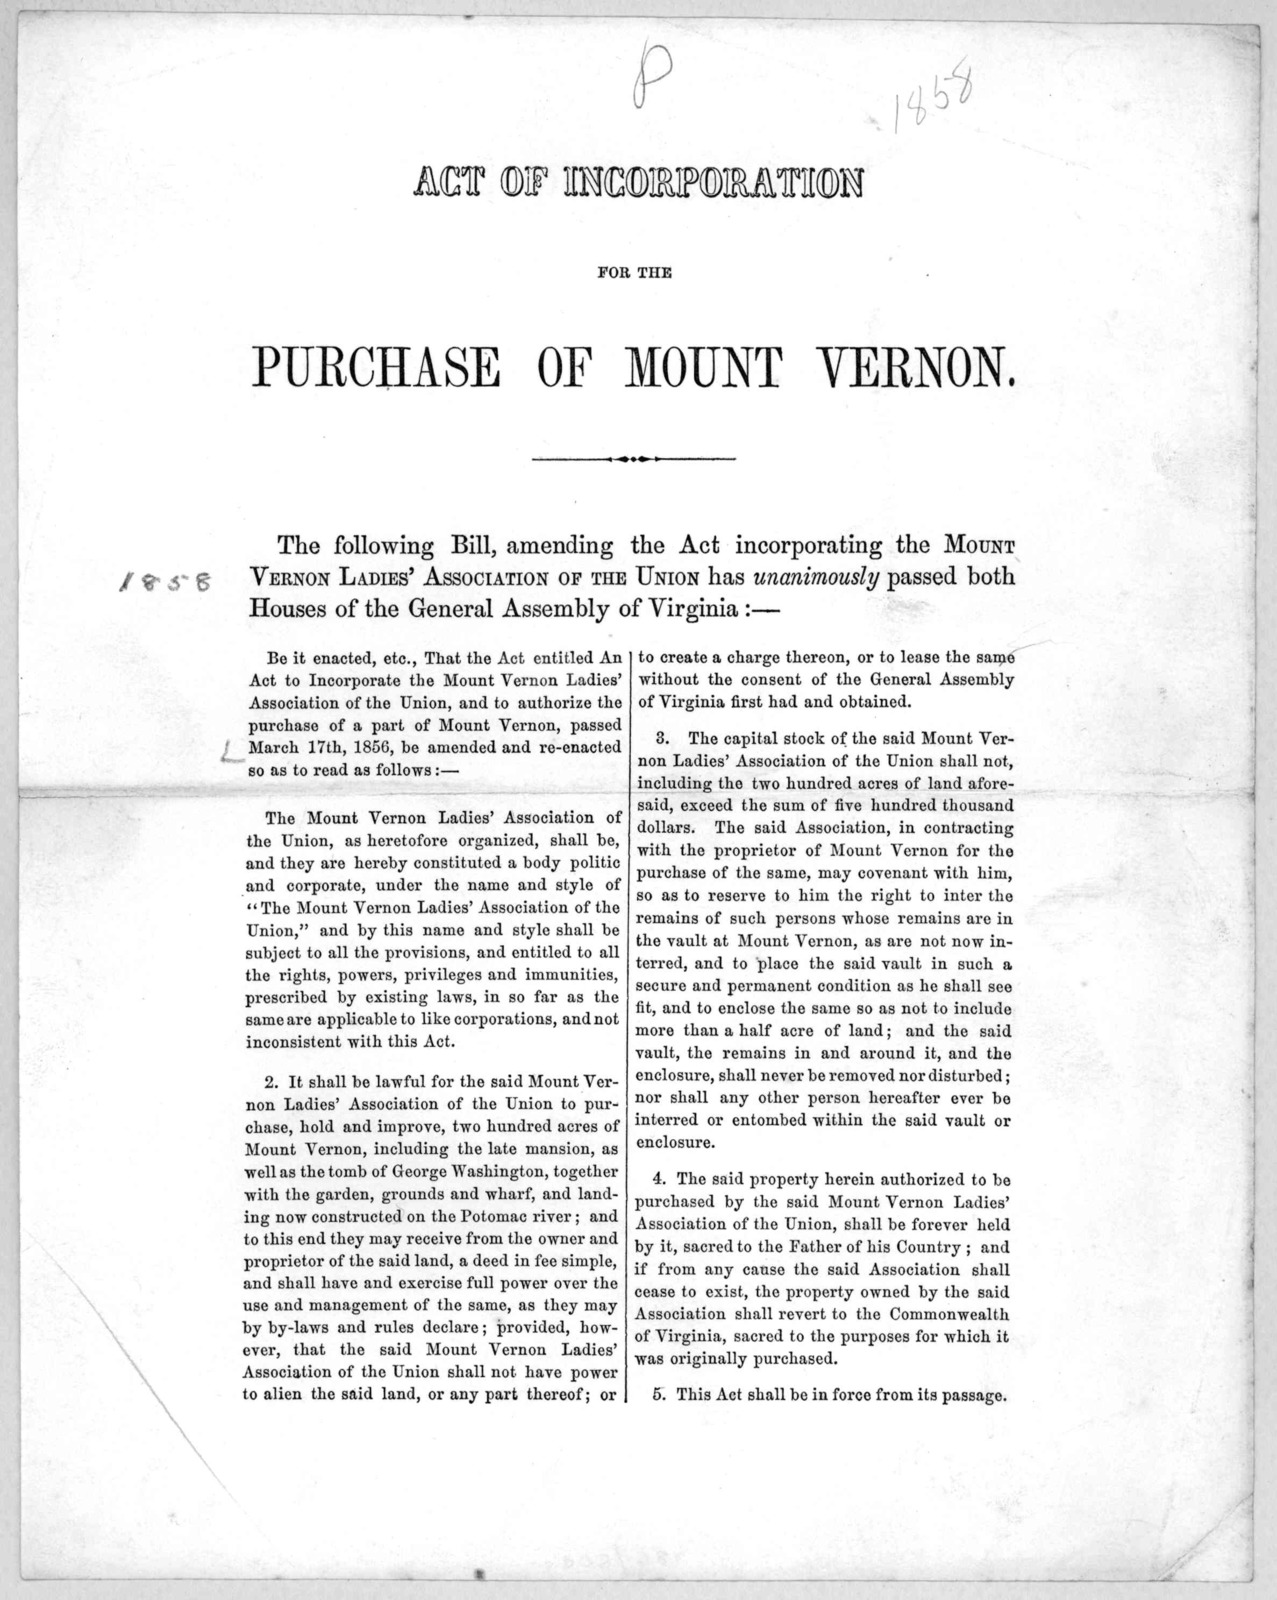 Act of incorporation for the purchase of Mount Vernon. The following bill, amending the act incorporating the Mount Vernon ladies' association of the Union has unanimously passed both Houses of the General Assembly of Virginia ... [n. p. 1856].